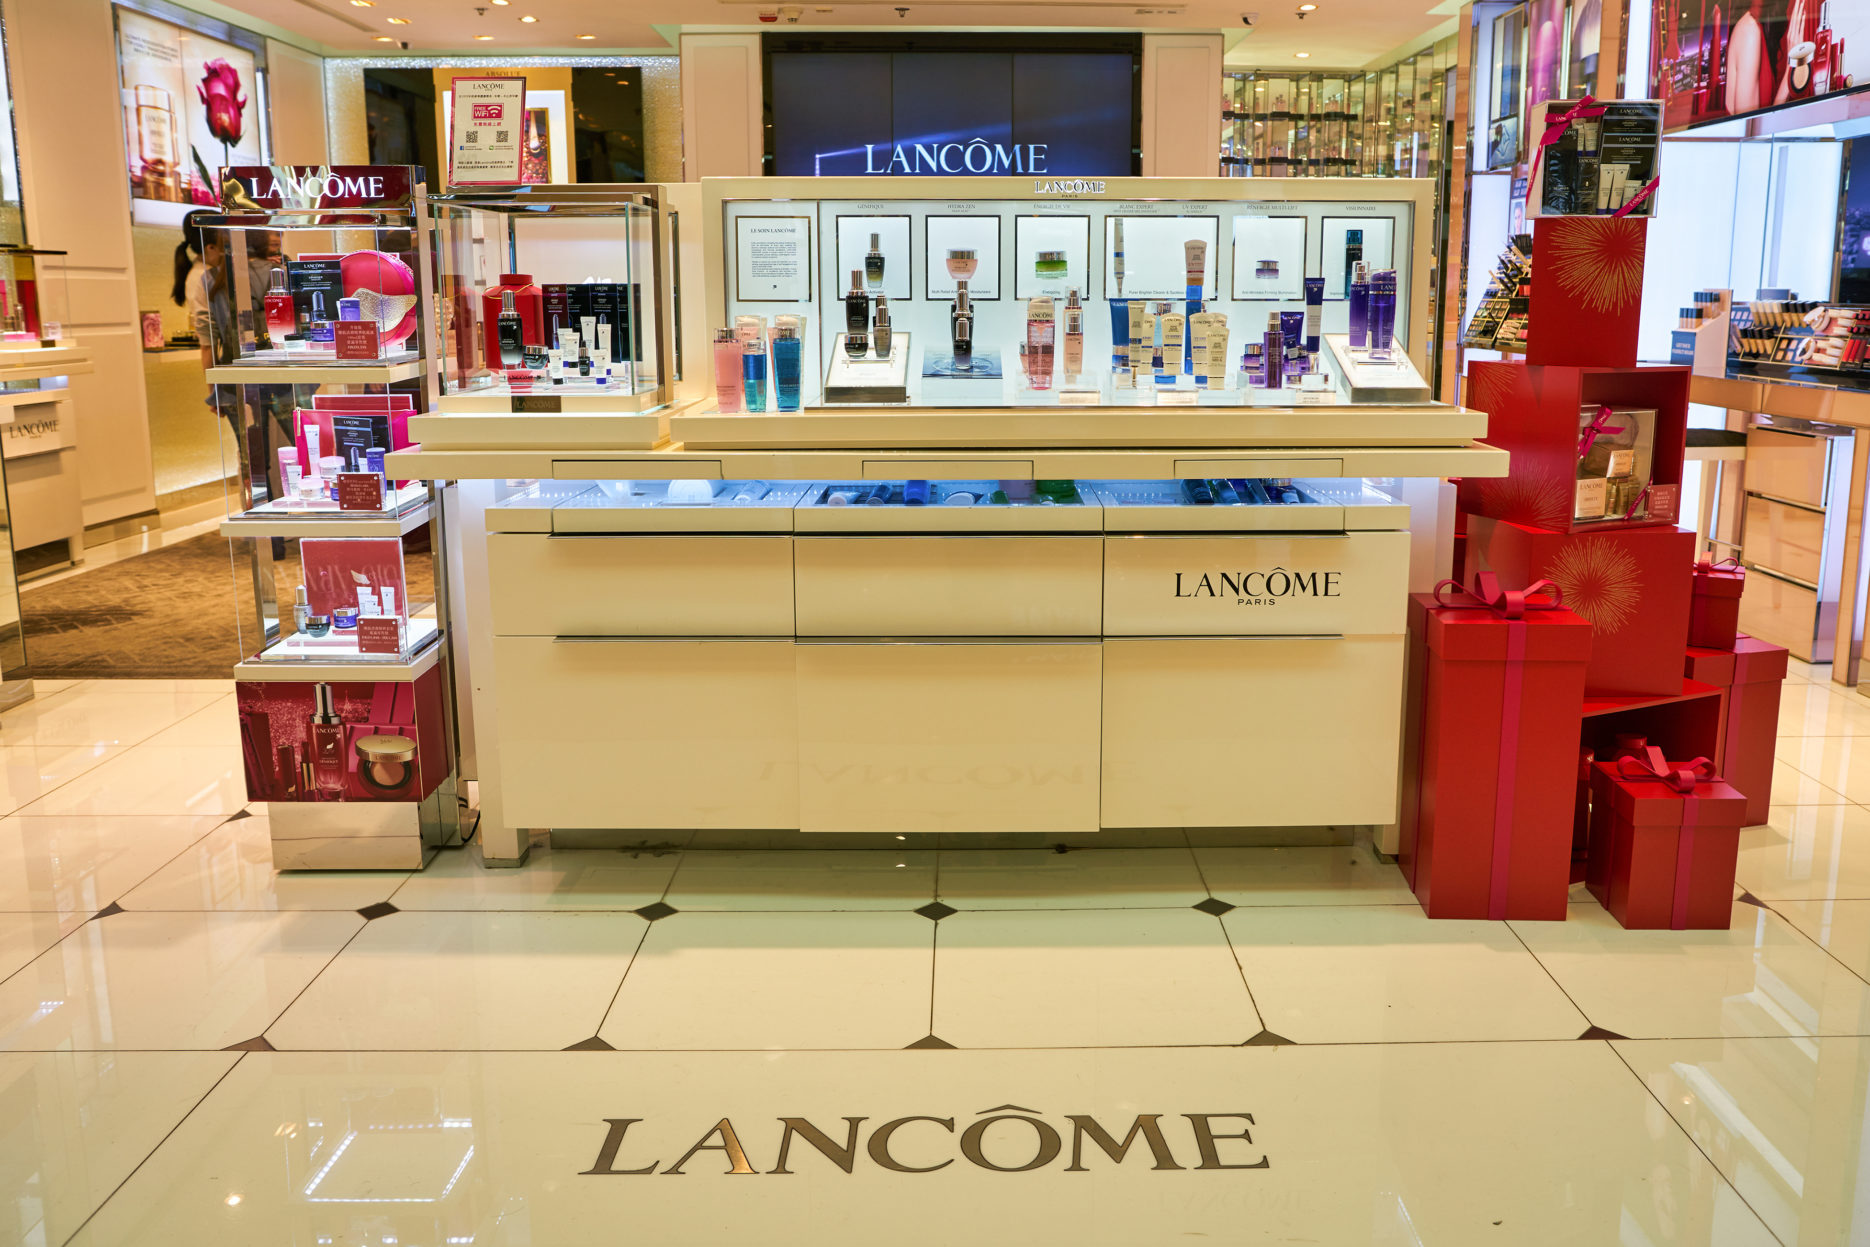 Lancome store front